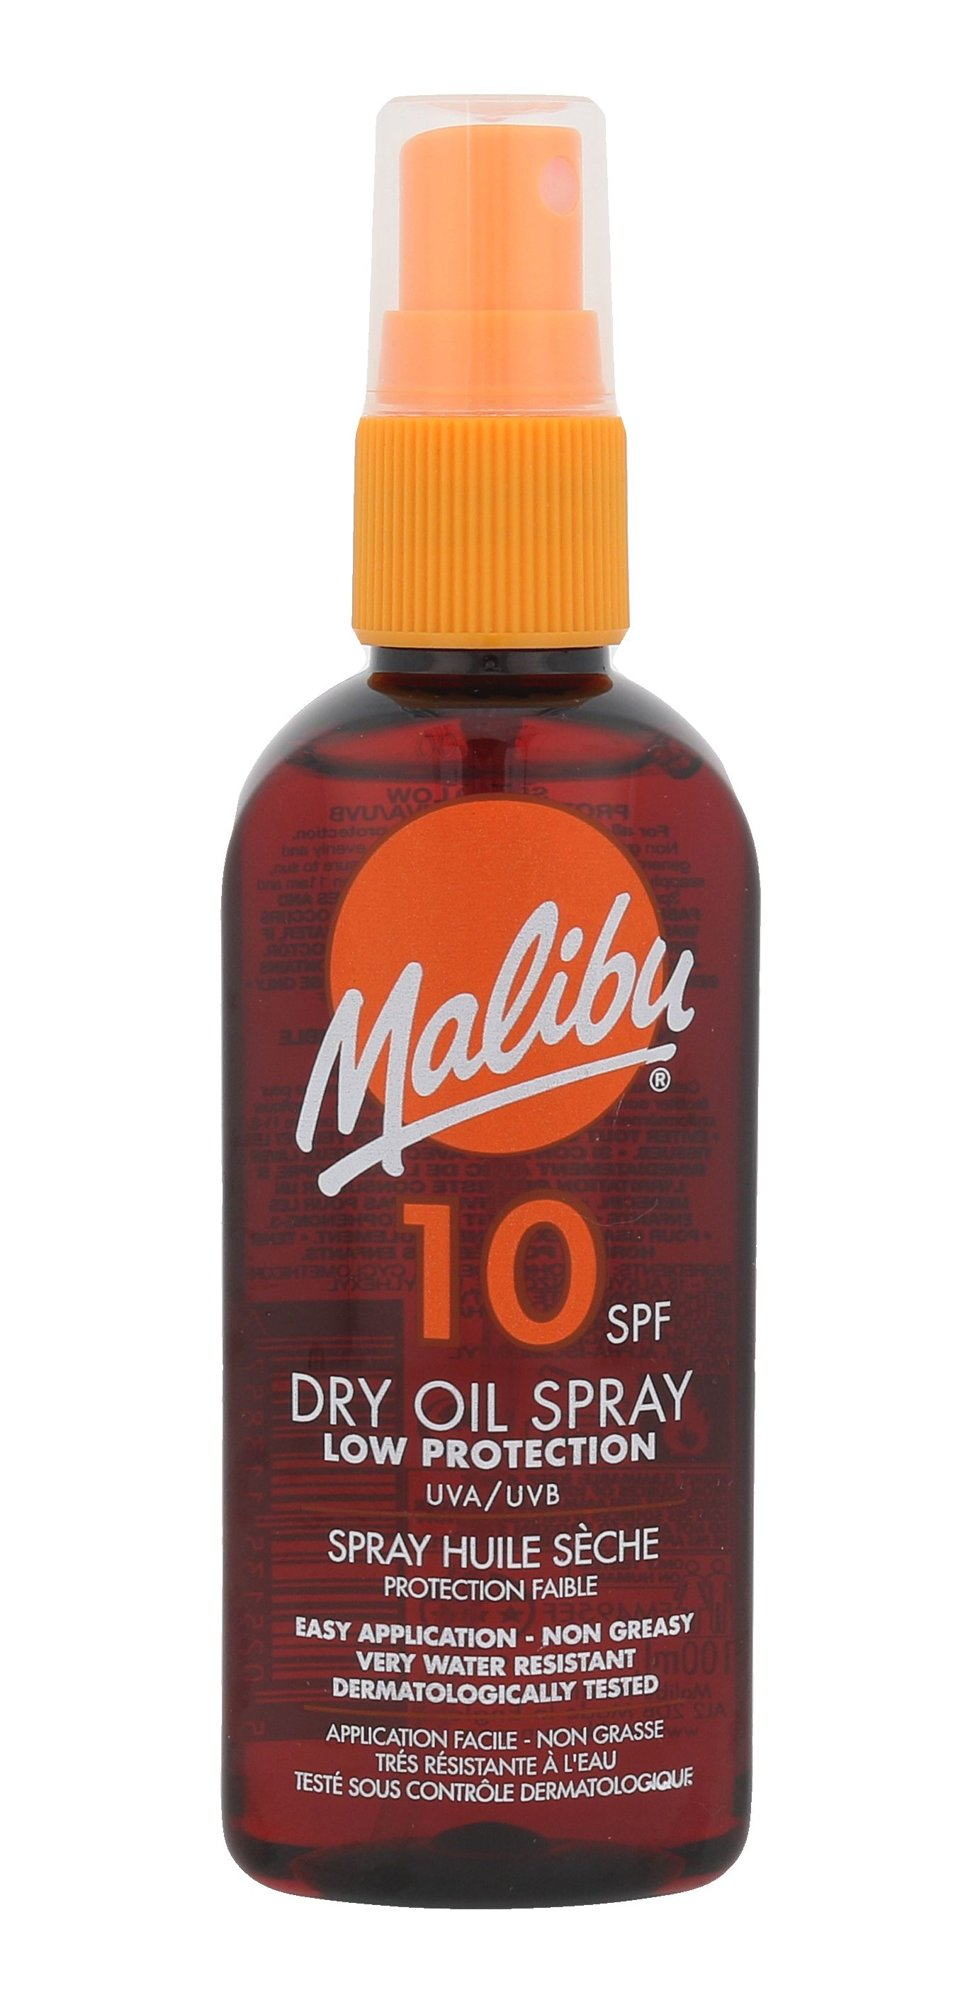 Malibu Dry Oil Spray SPF10